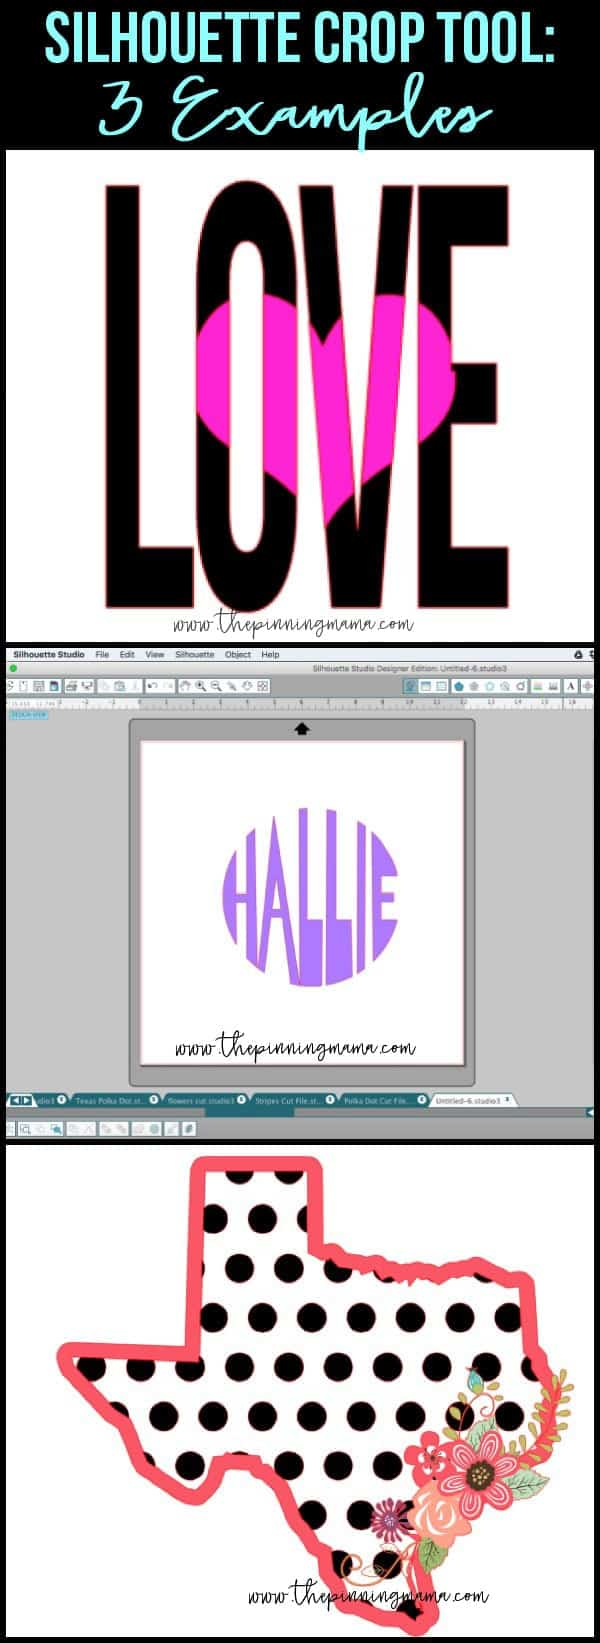 4 AWESOME ways to use the SIlhouette Crop tool!!! Learn how to design any craft you can imagine in the Silhouette Studio software!